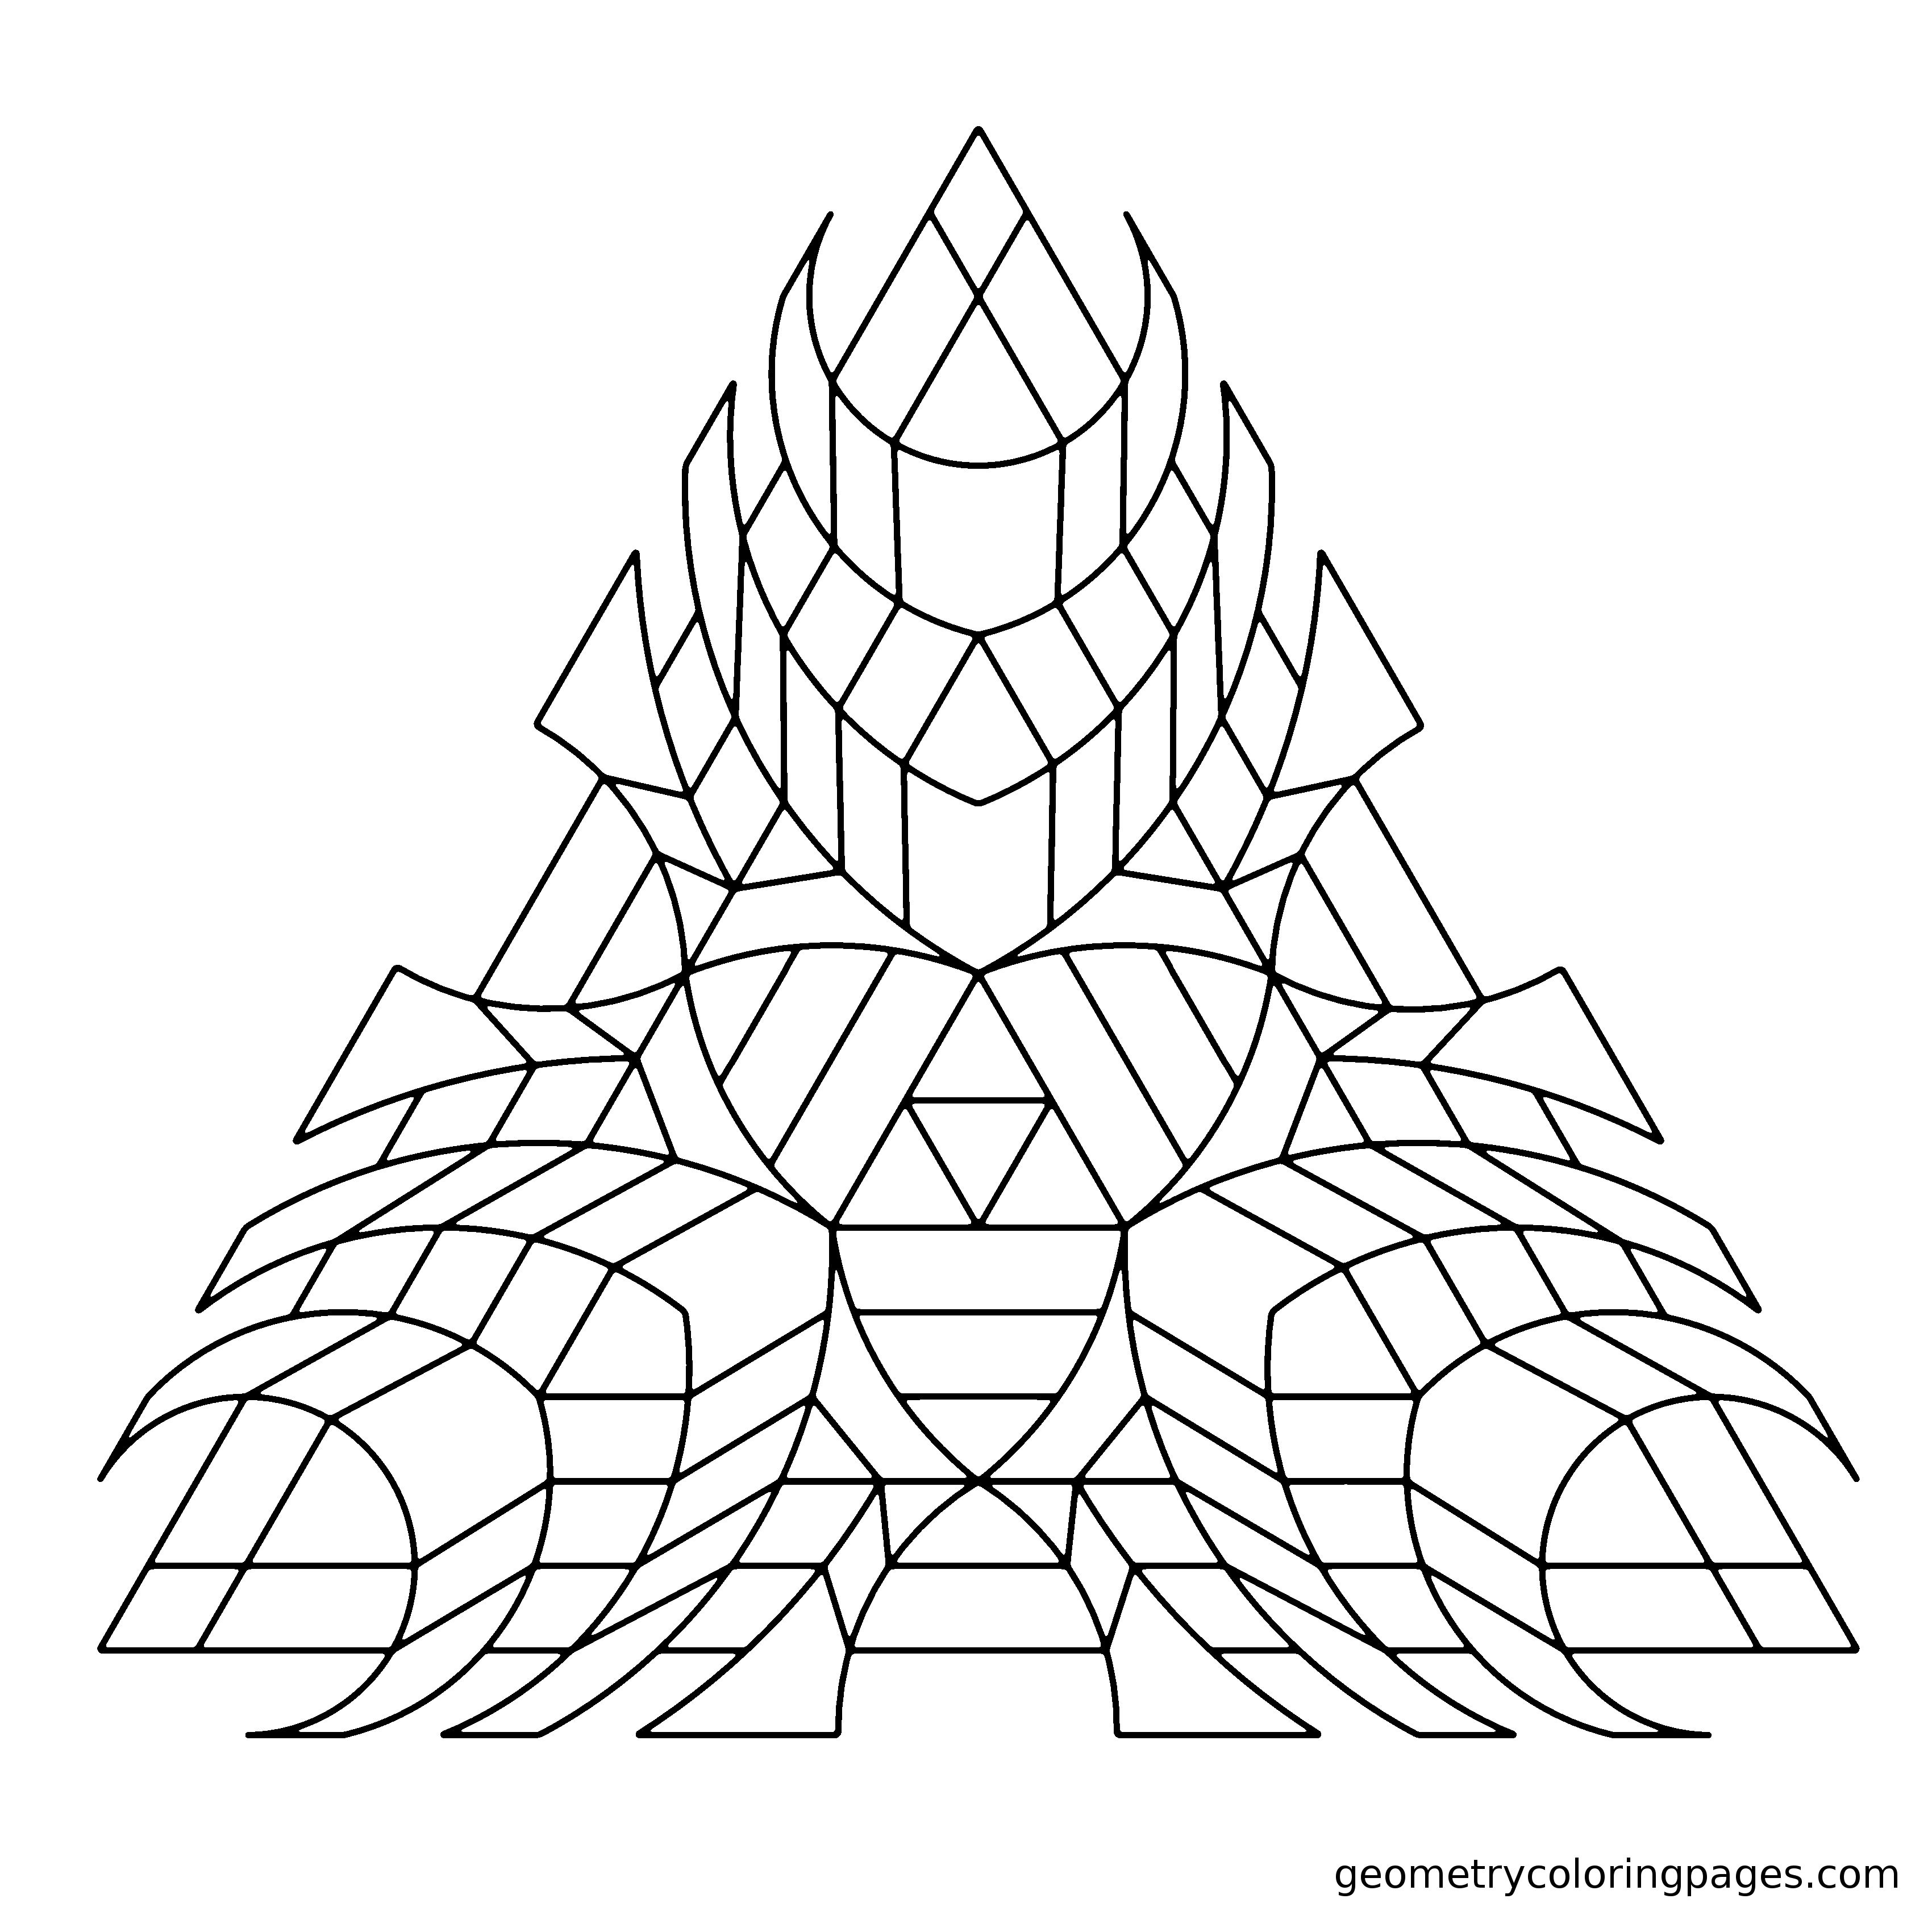 Geometry Coloring Page from geometrycoloringpages.com | Adult ...